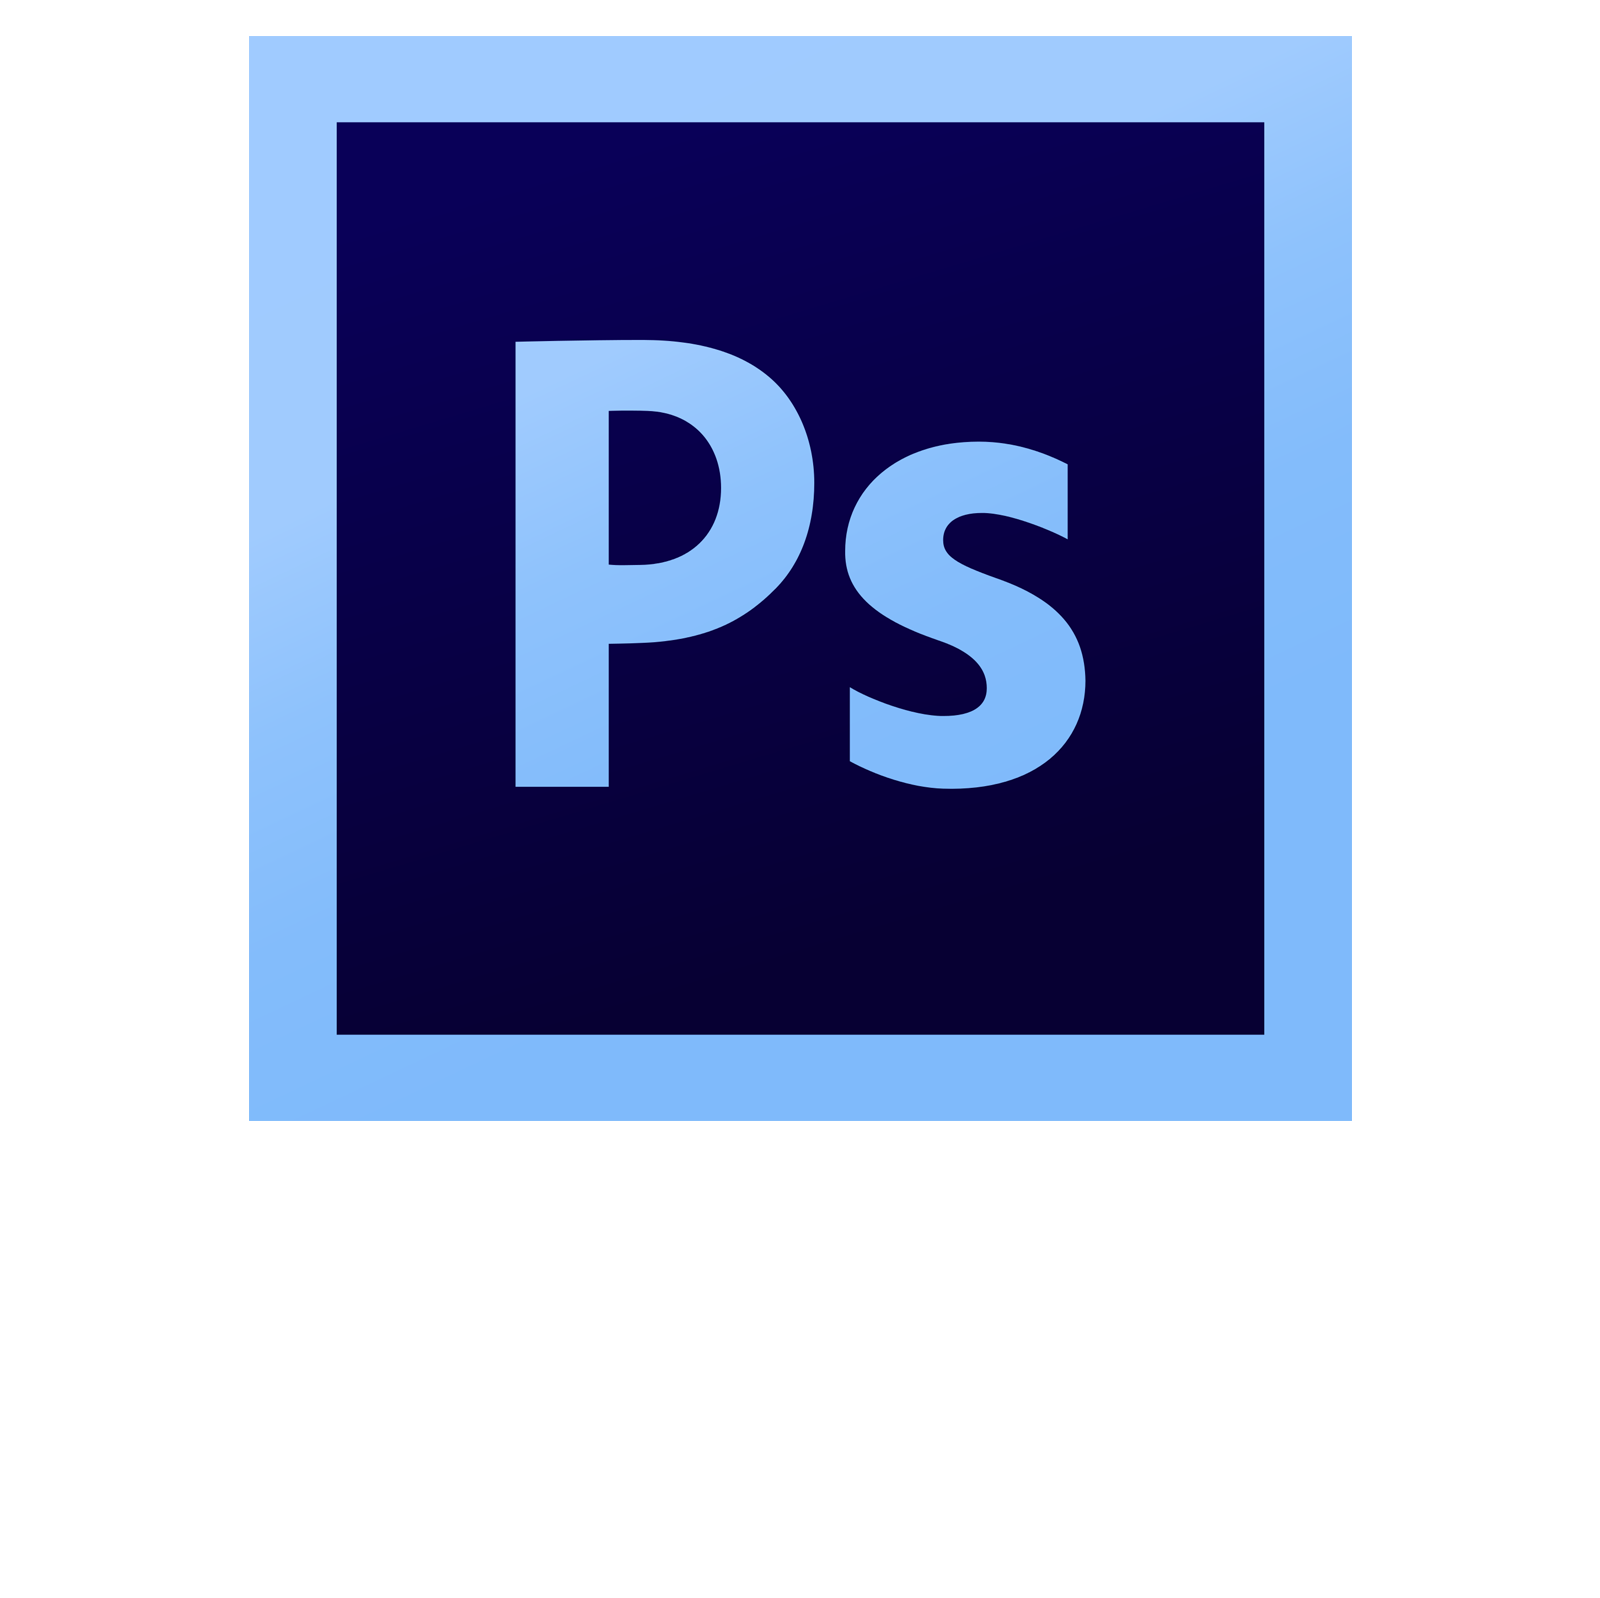 Adobe photoshop cc logo png. Windows central was first